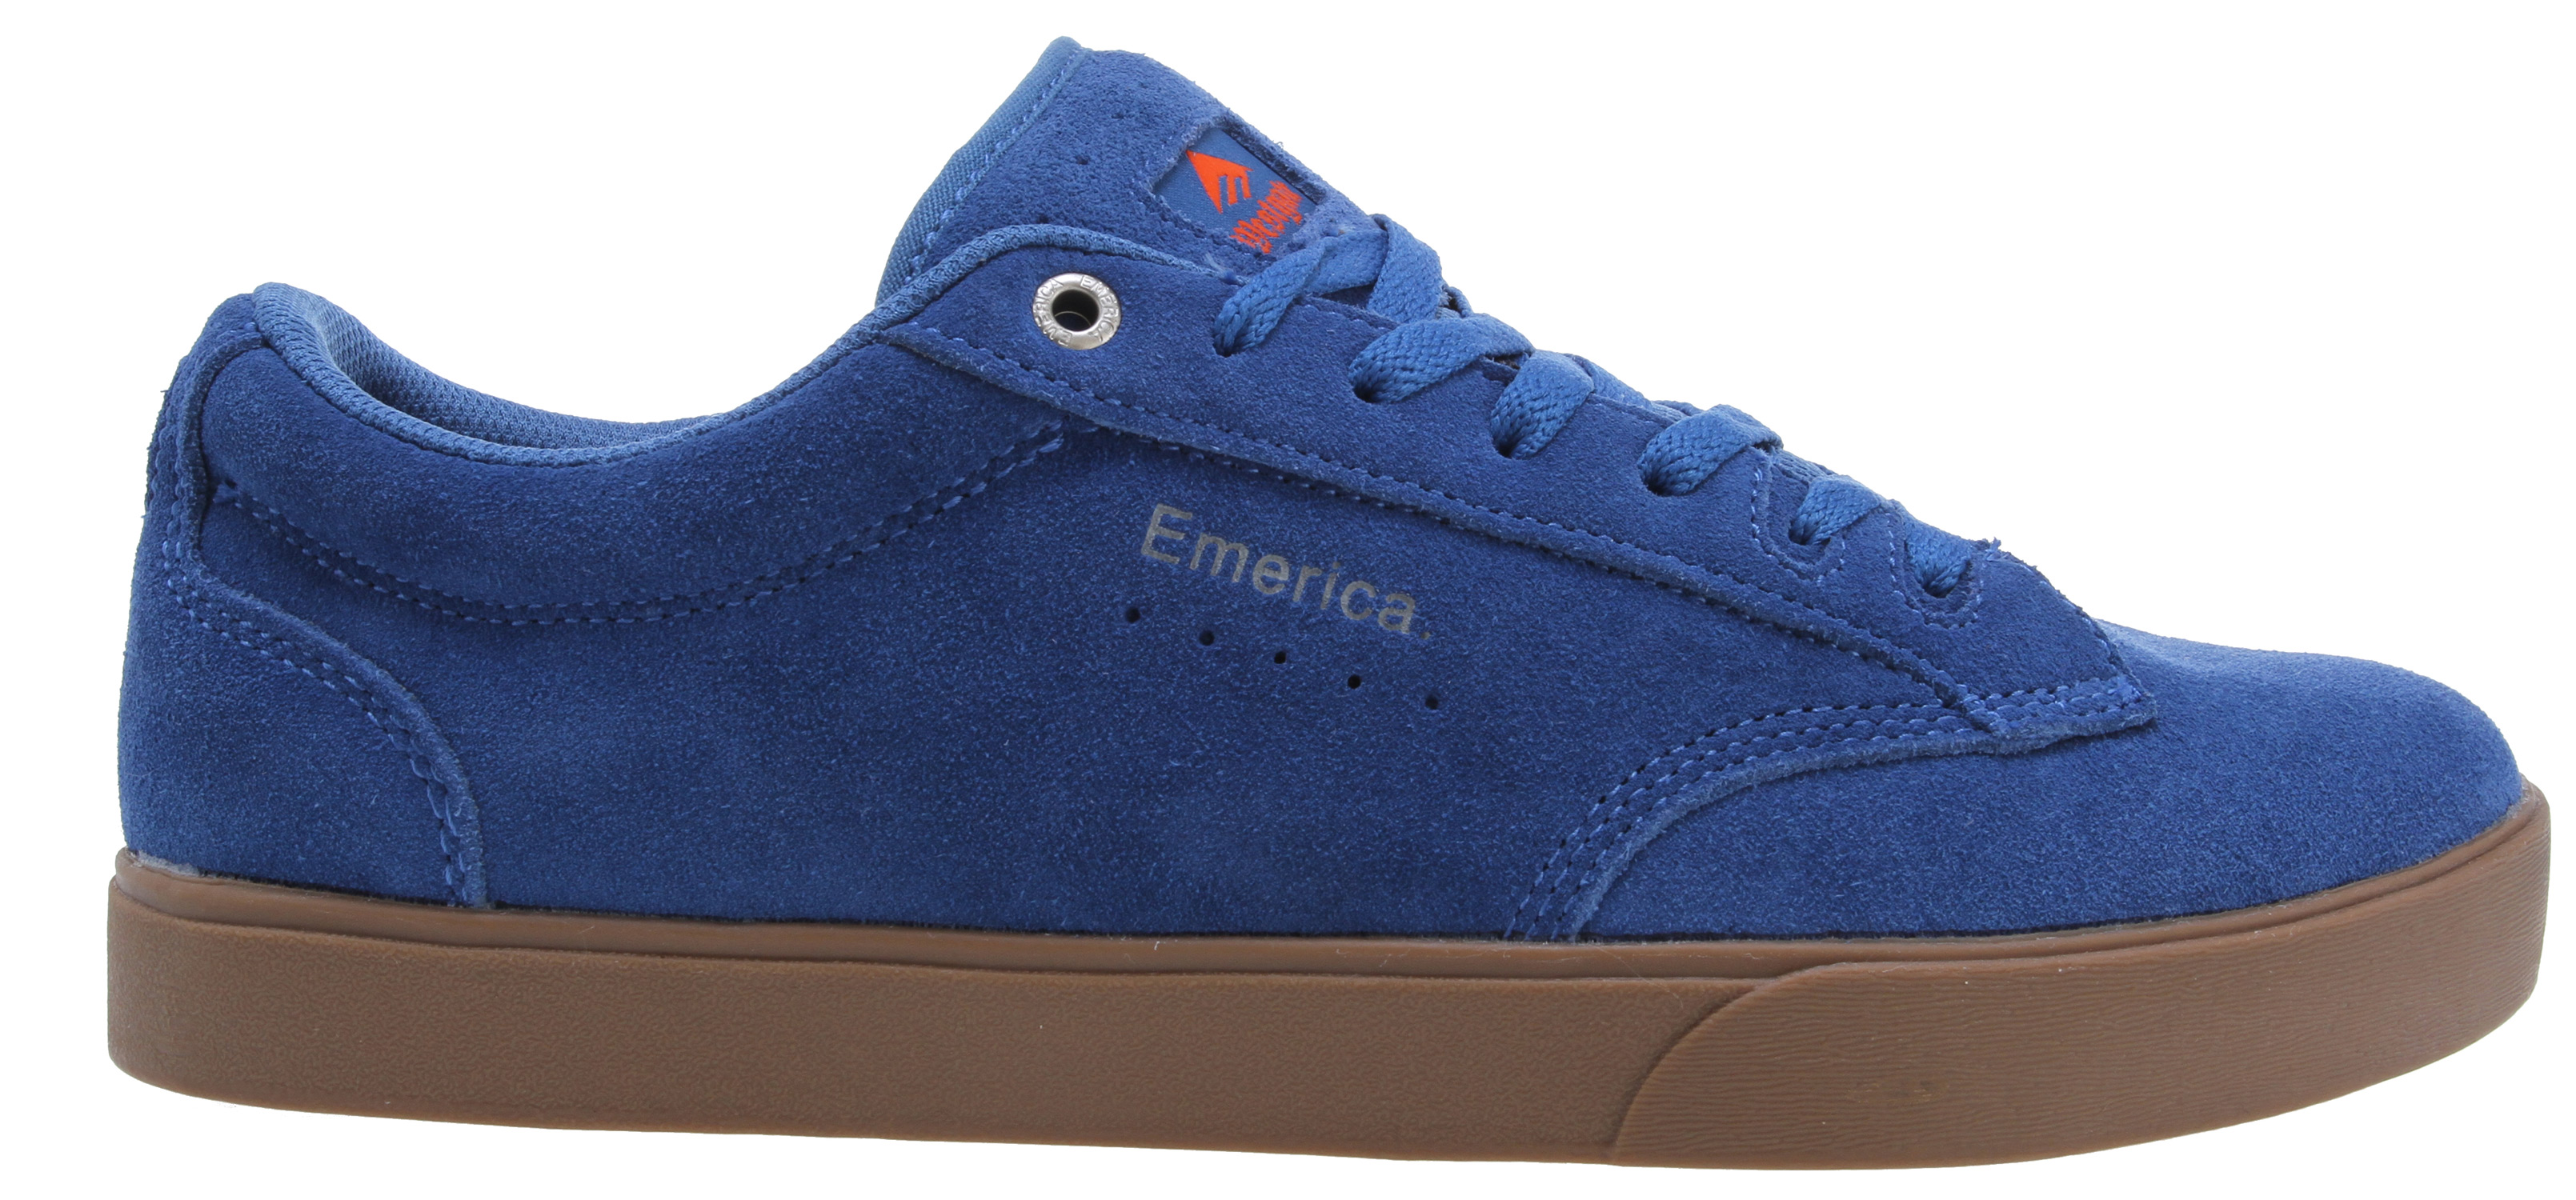 Skateboard Brandon Westgate's second Emerica shoe is a low-key + high-performance nailer.Key Features of the Emerica The Flick Skate Shoes: Thin padded tongue and collar Foam Pro 1 footbed Full-length internal EVA midsole Natural gum rubber outsole - $44.95